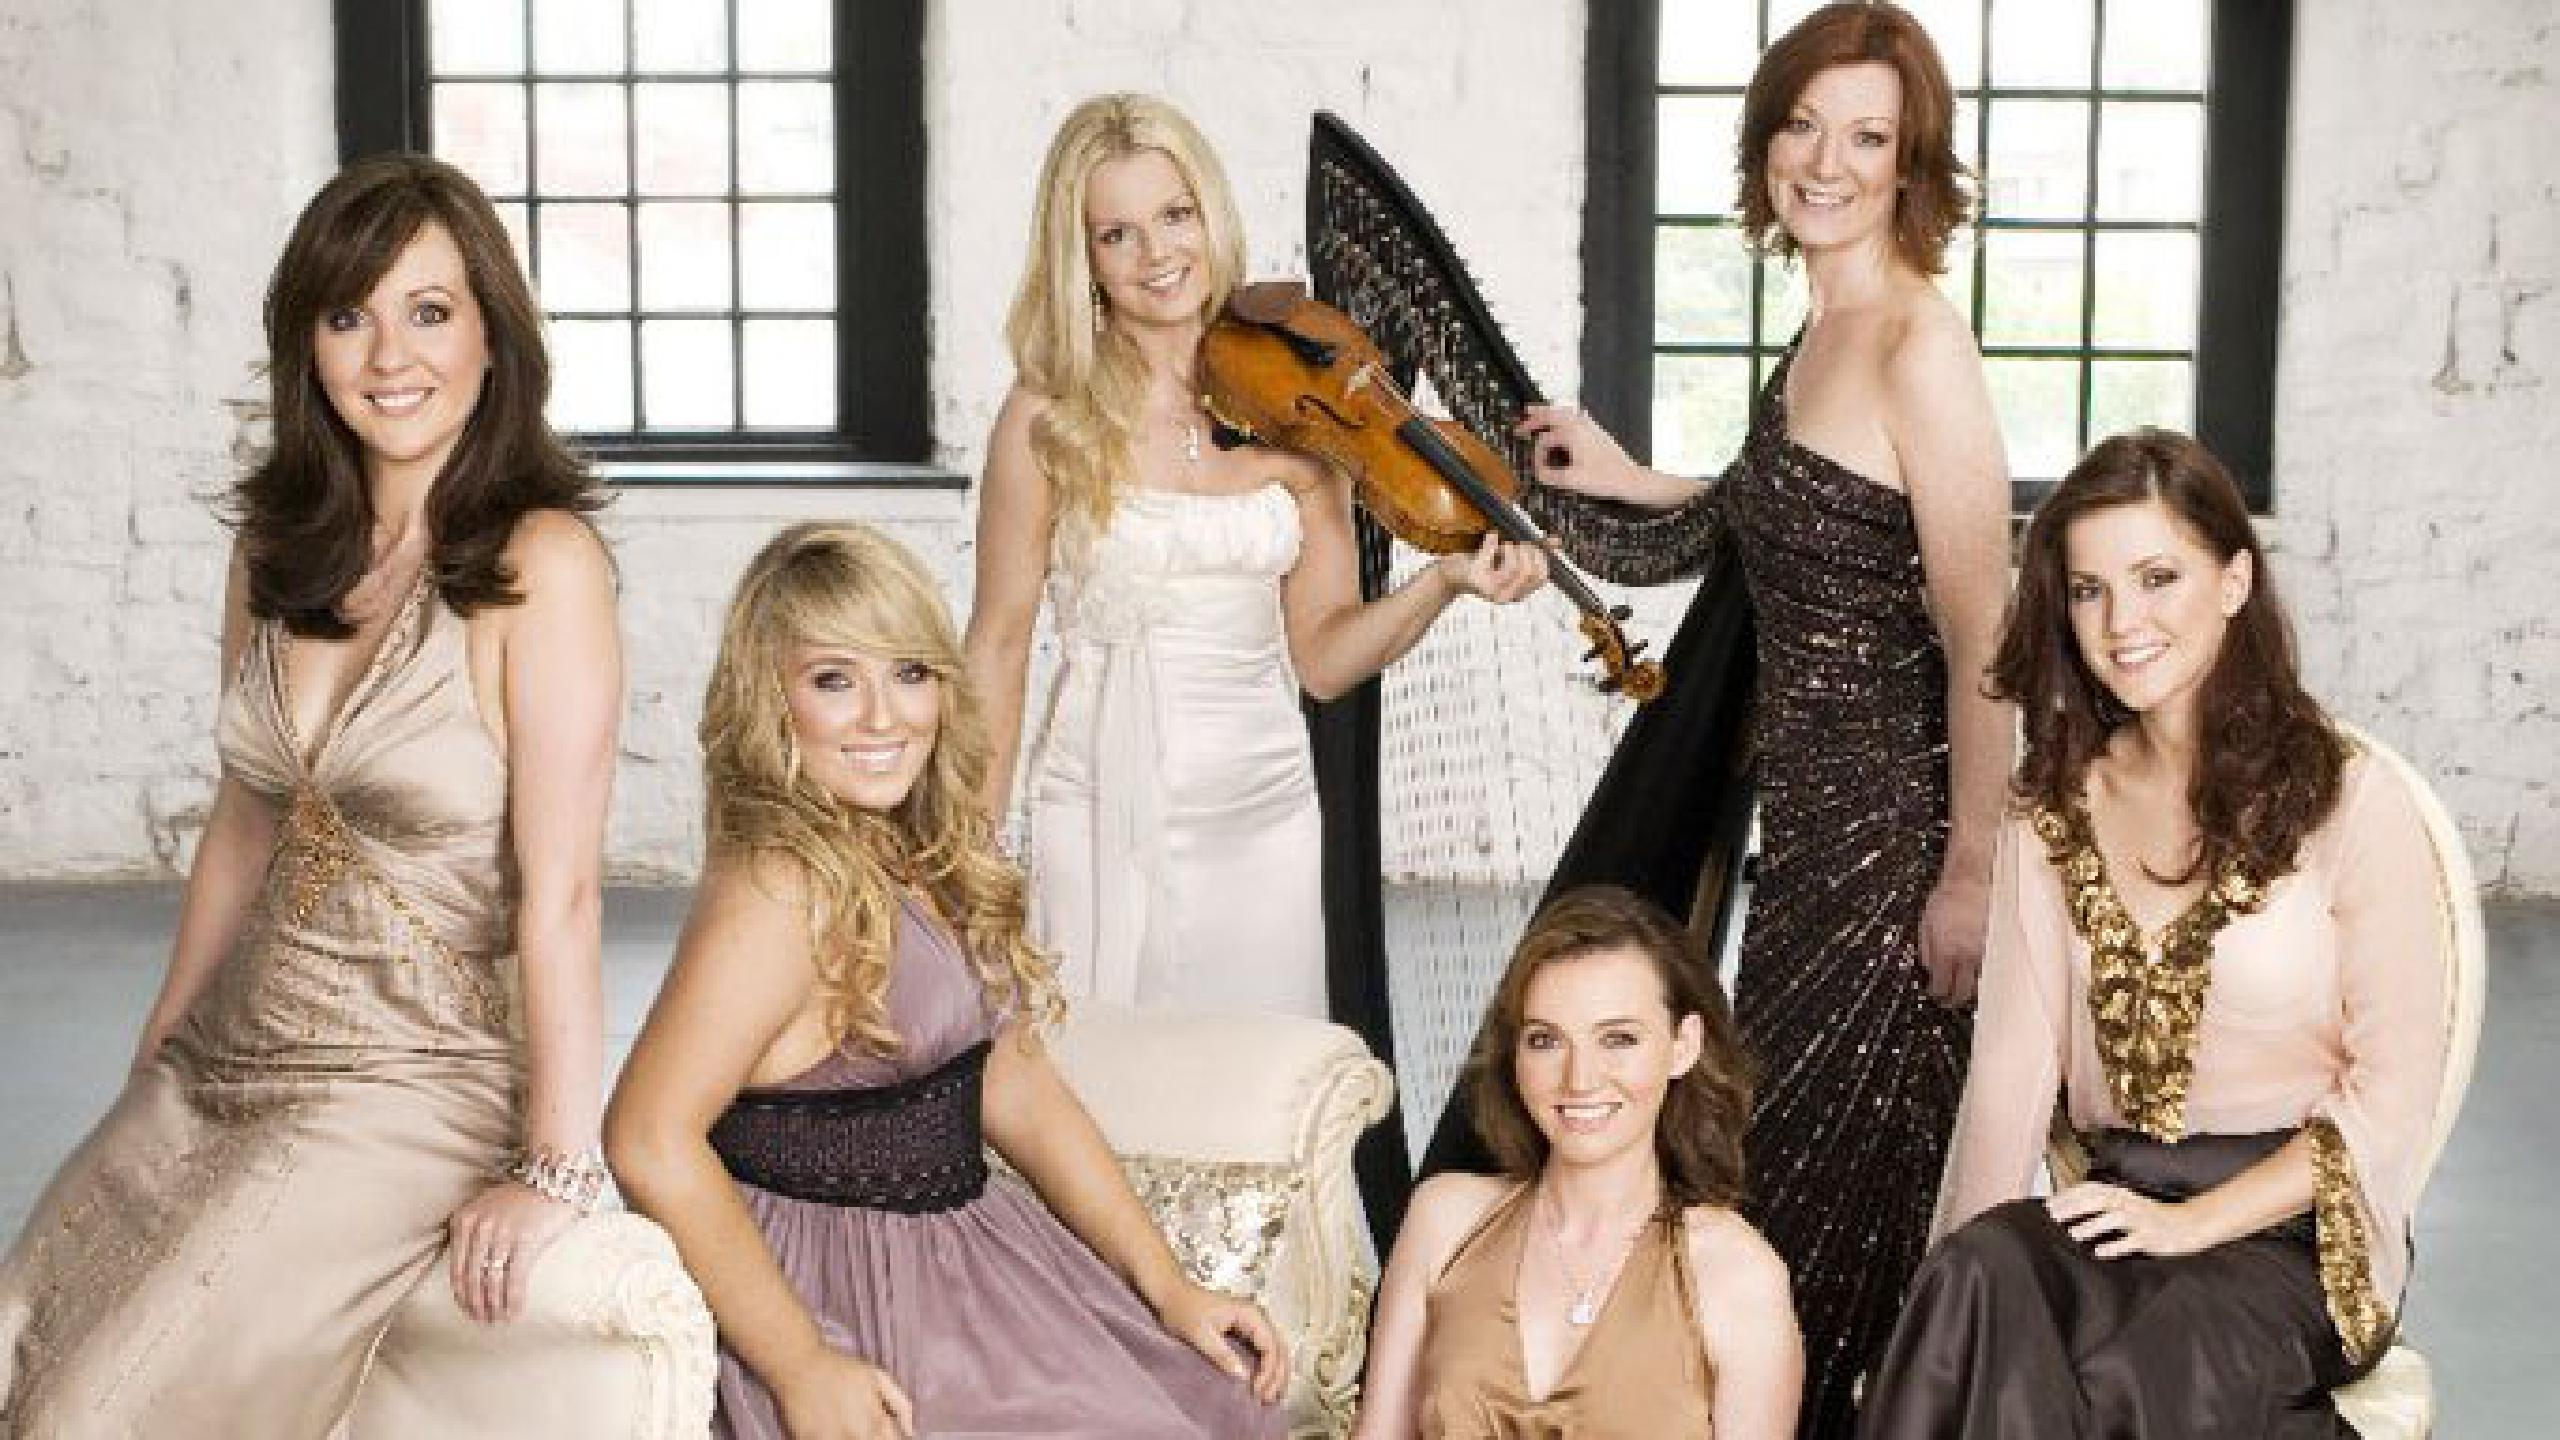 Celtic Woman Tour Dates 2021 2022 Celtic Woman Tickets And Concerts Wegow United States